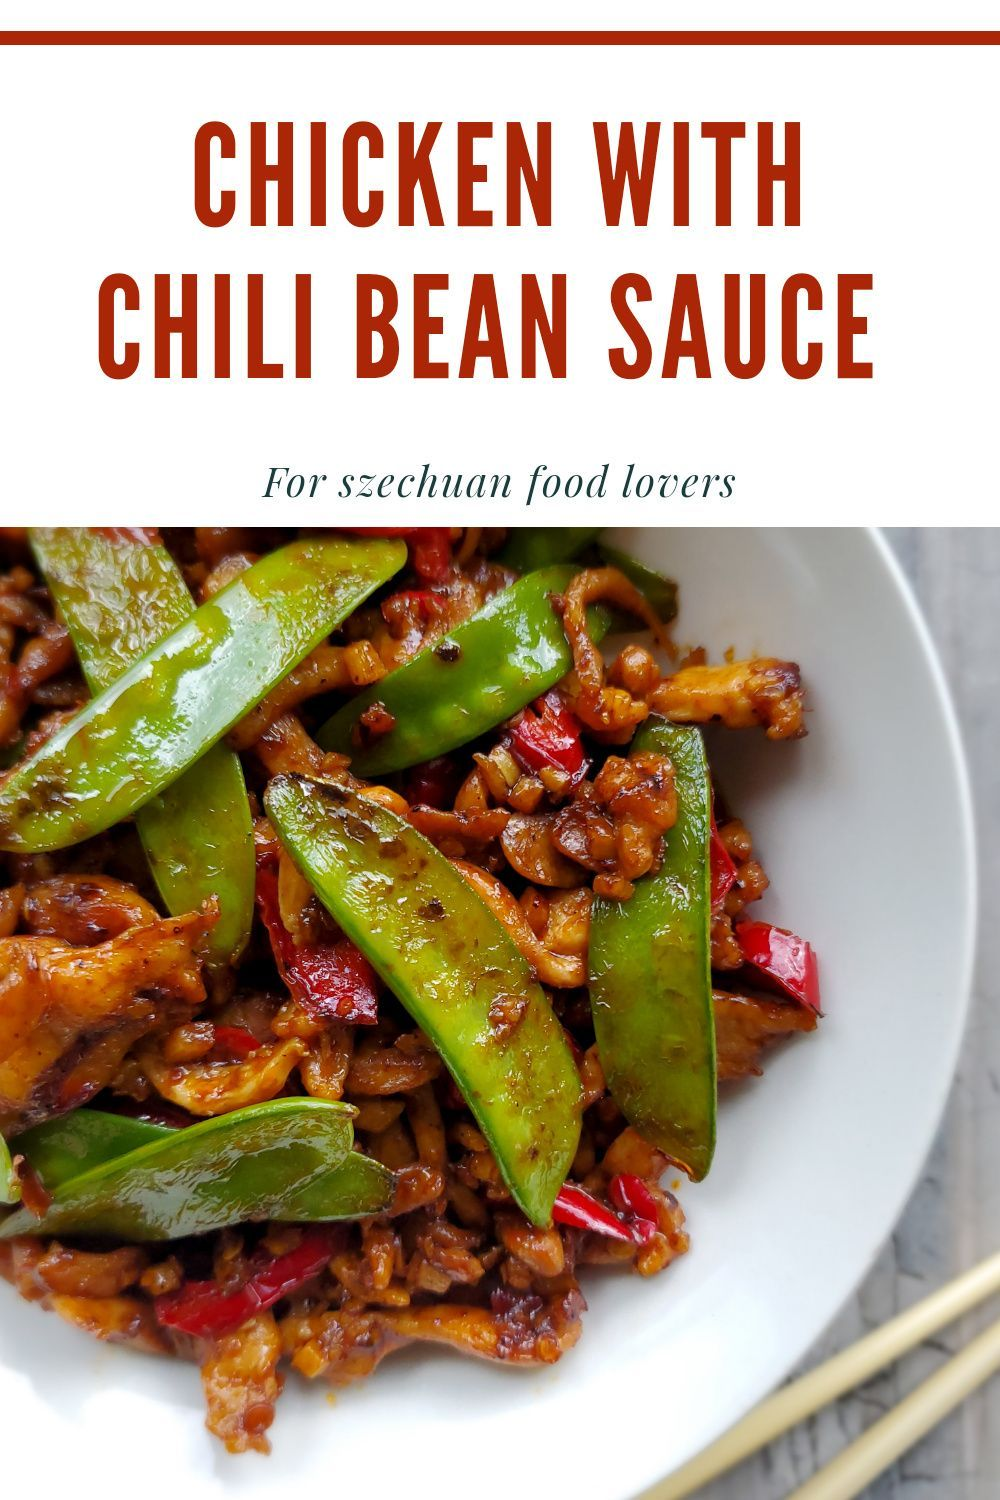 Chicken with Chili Bean Sauce A super hot and deli